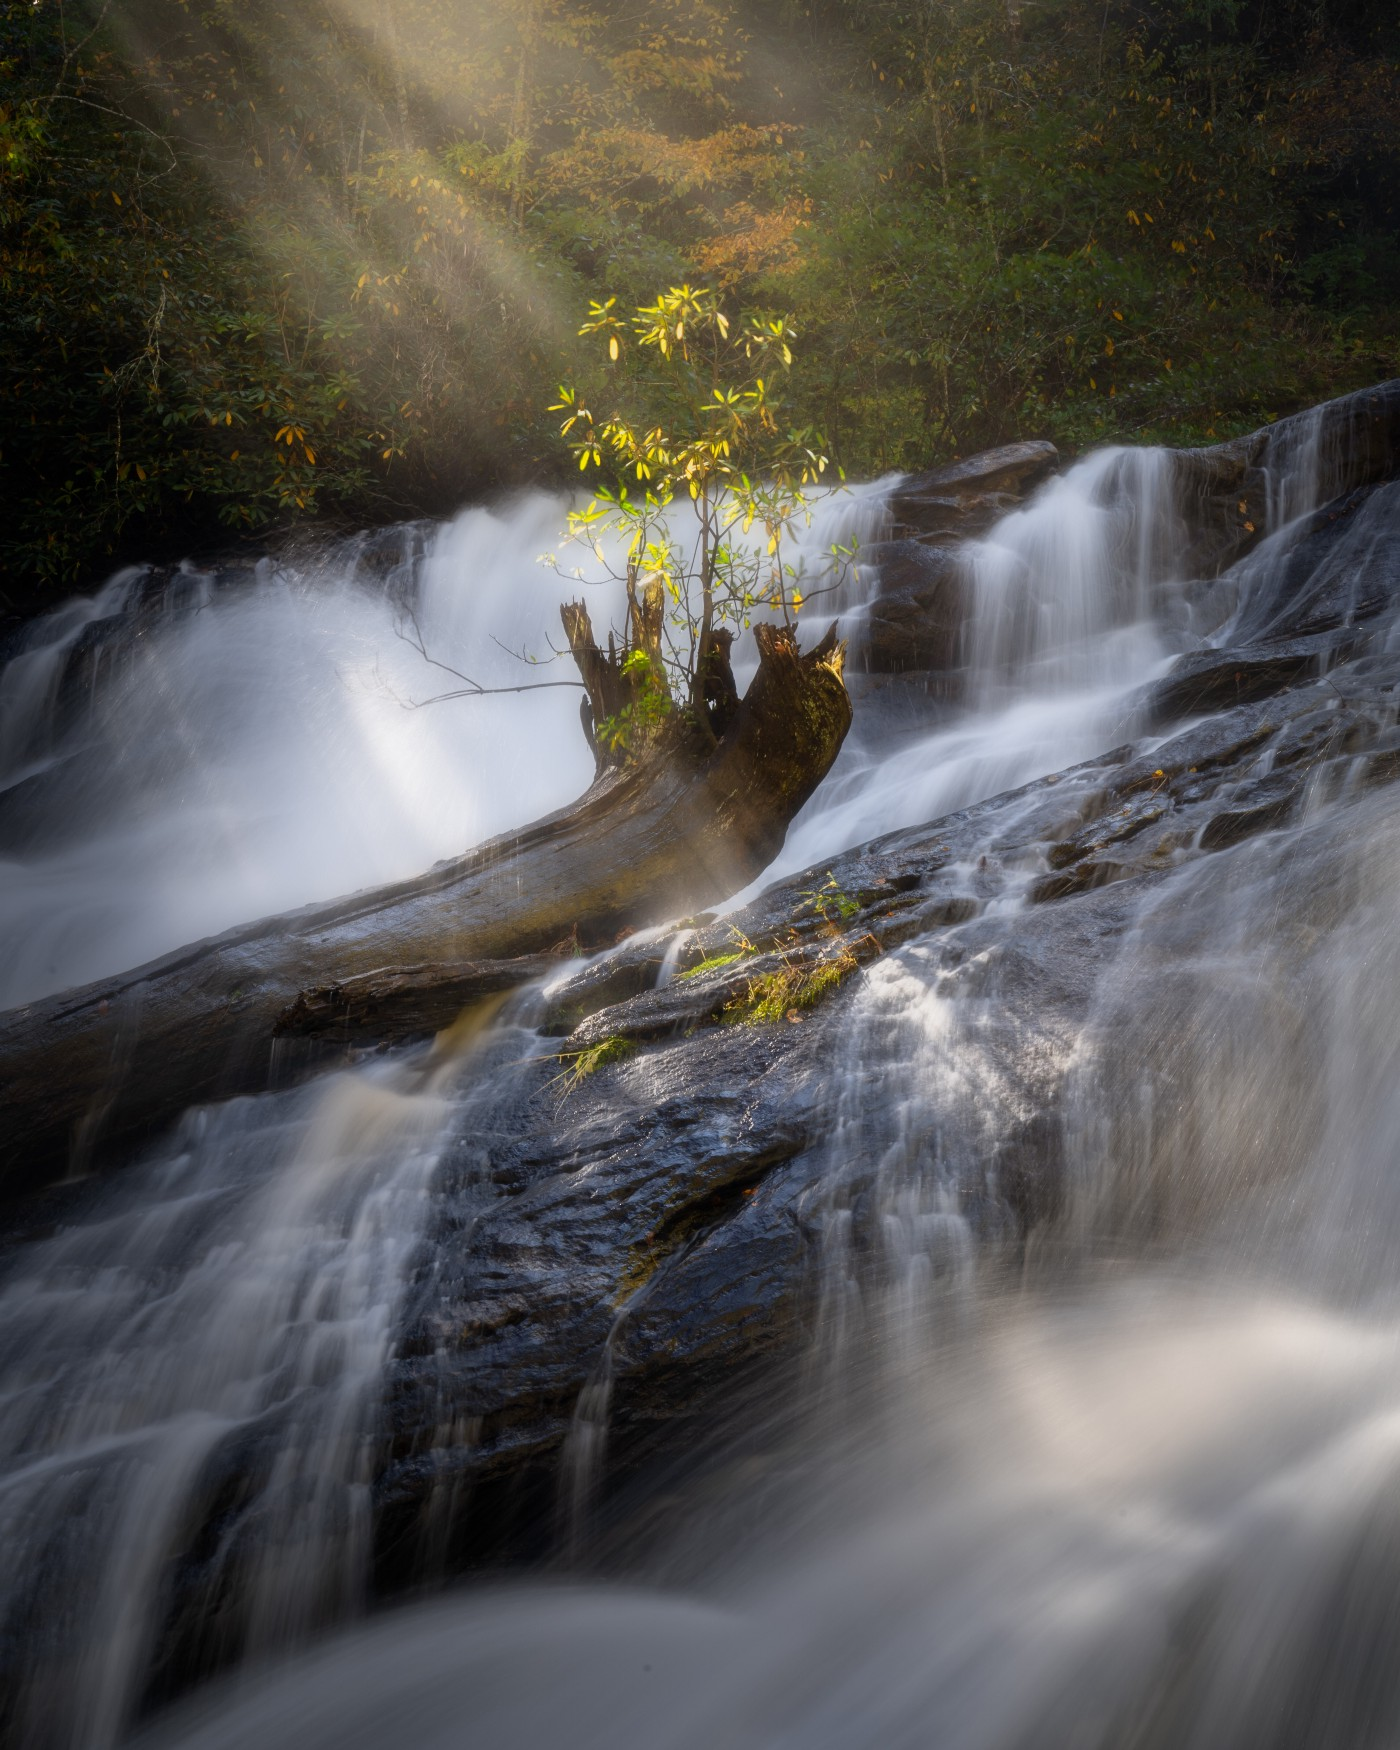 Light rays on a small tree in the middle of a waterfall.